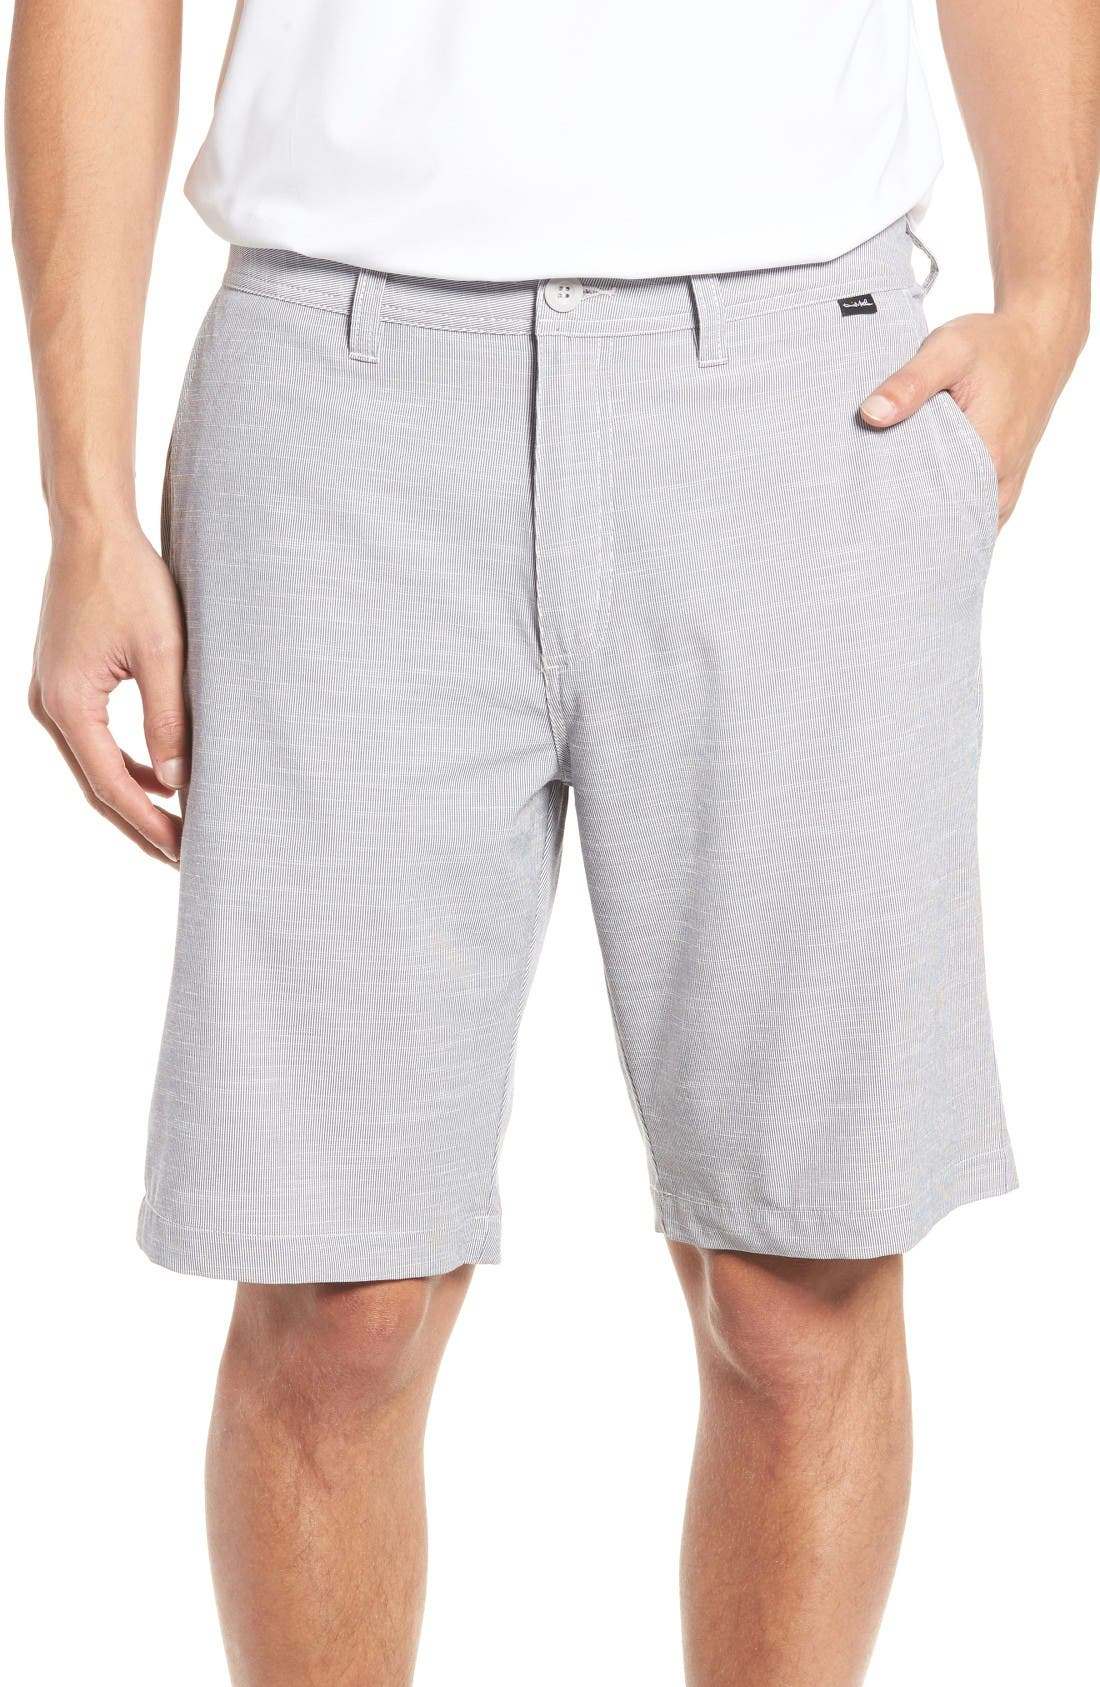 Travis Mathew St. George Stretch Shorts